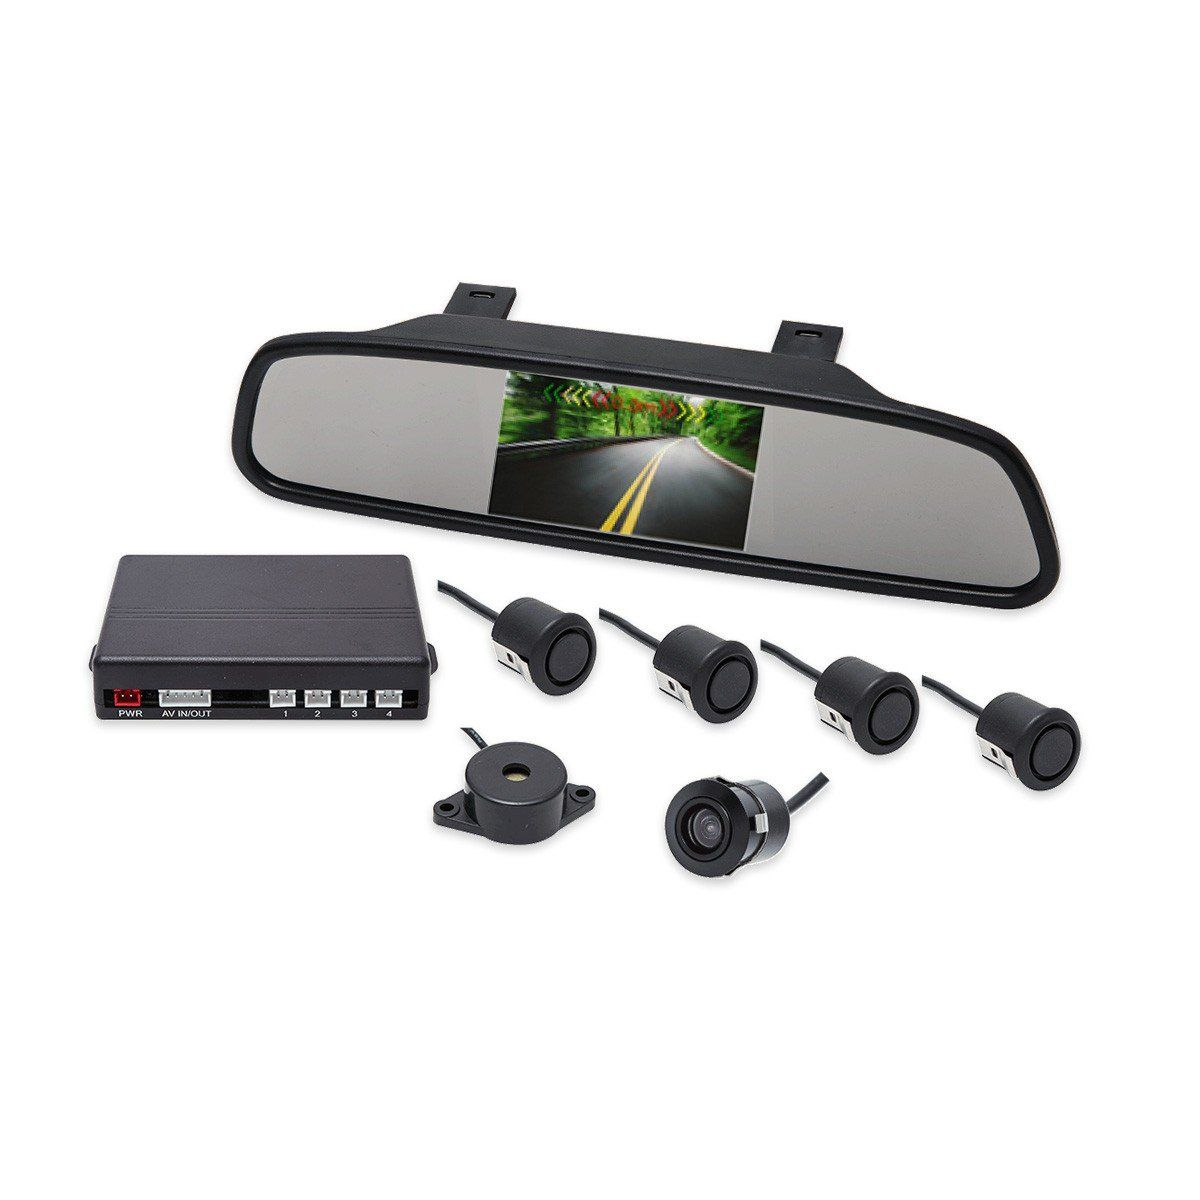 Kit Sensor de Estacionamento Retrovisor LCD Camera Ré Preto Fosco